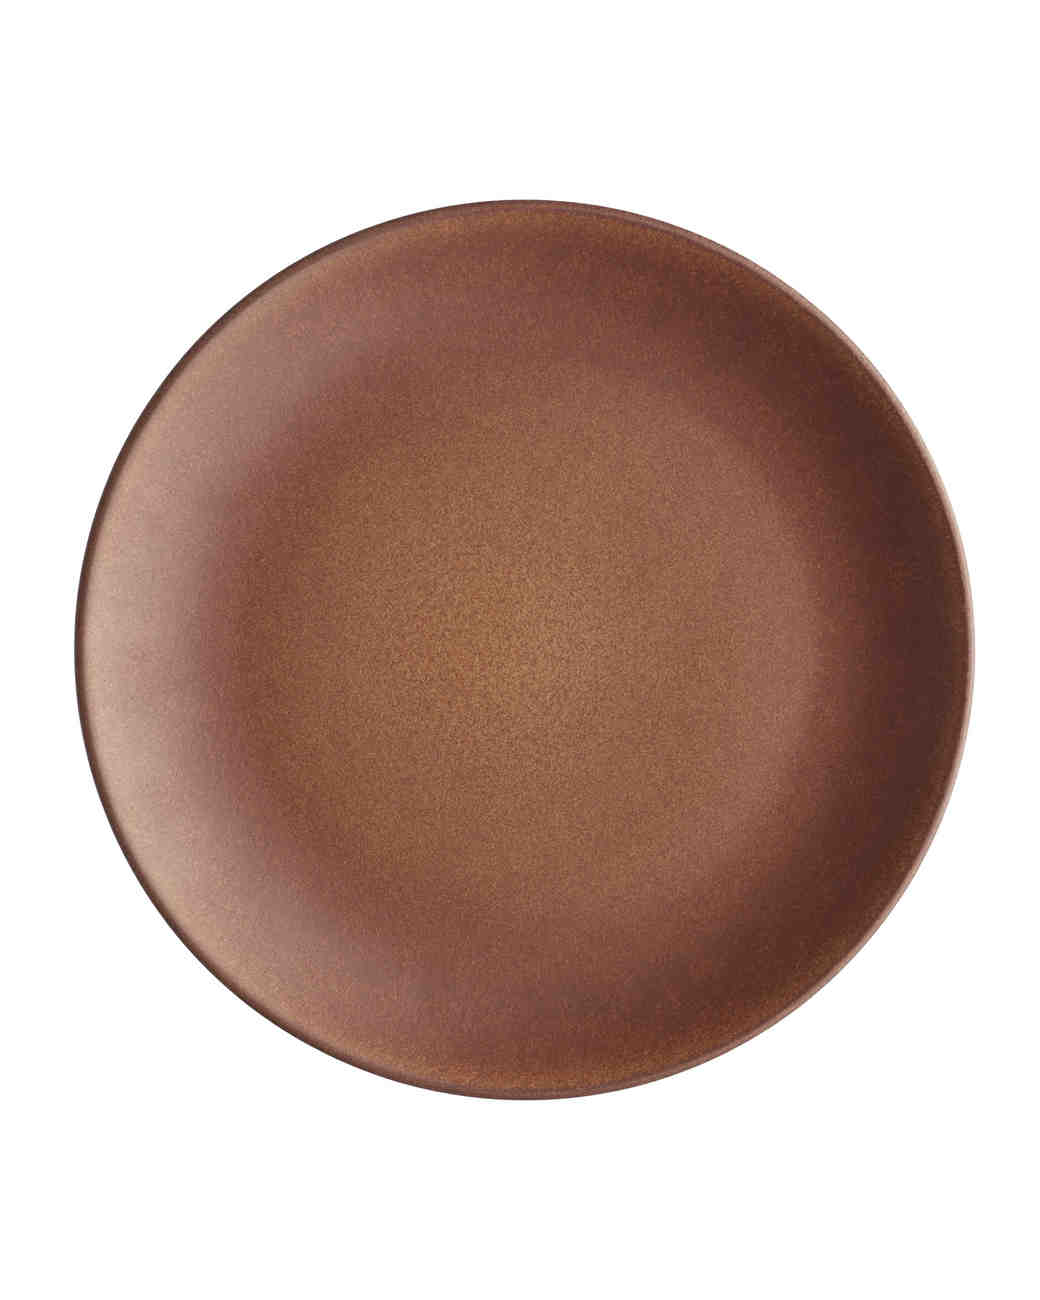 china-registry-global-clare-vivier-heath-coupe-dinner-plate-redwood-1014.jpg